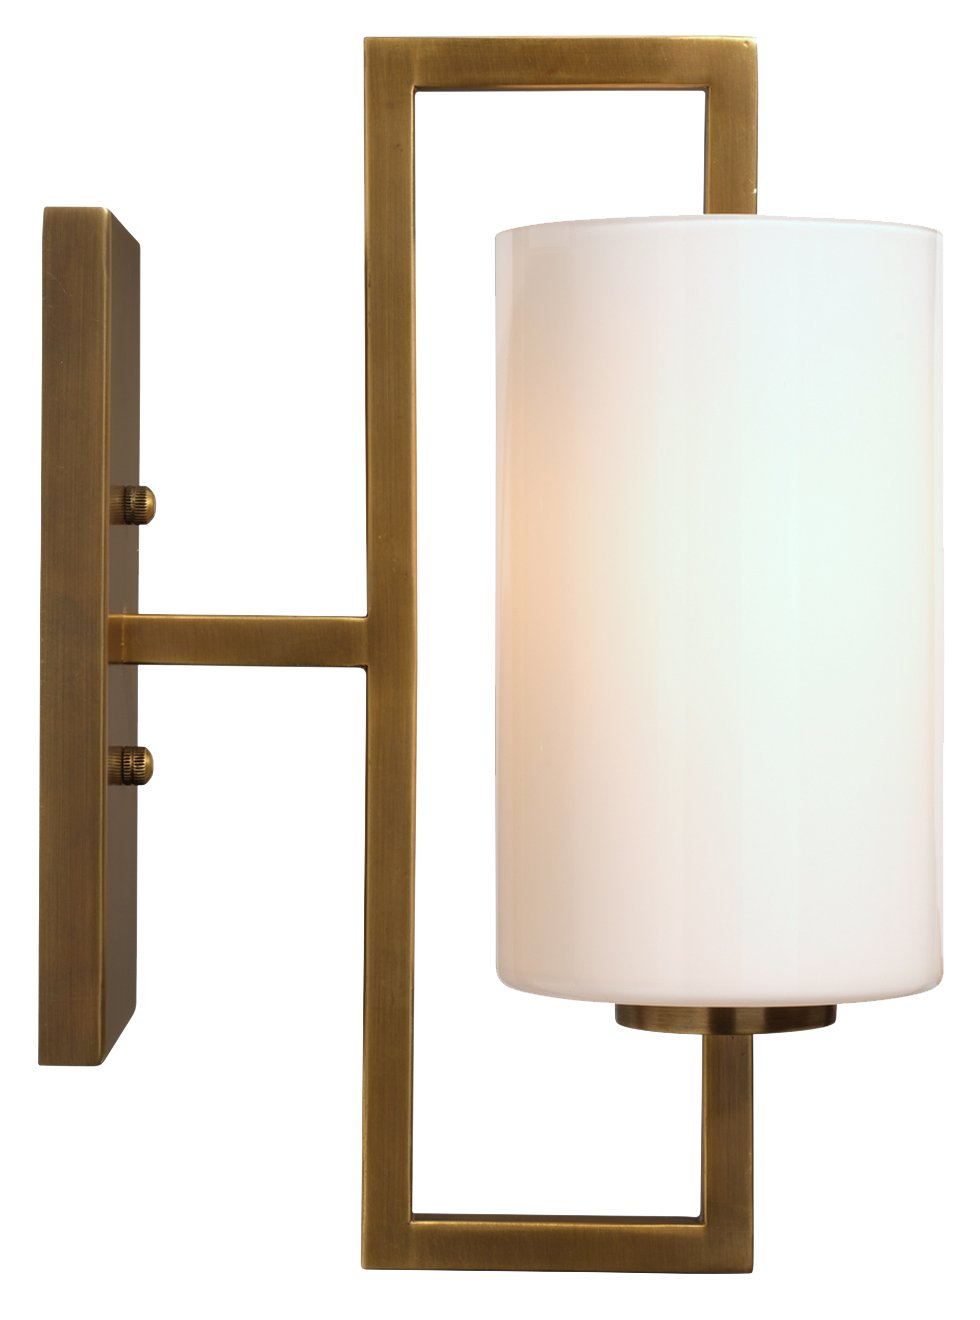 Blueprint Sconce in Antique Brass Metal & White Glass